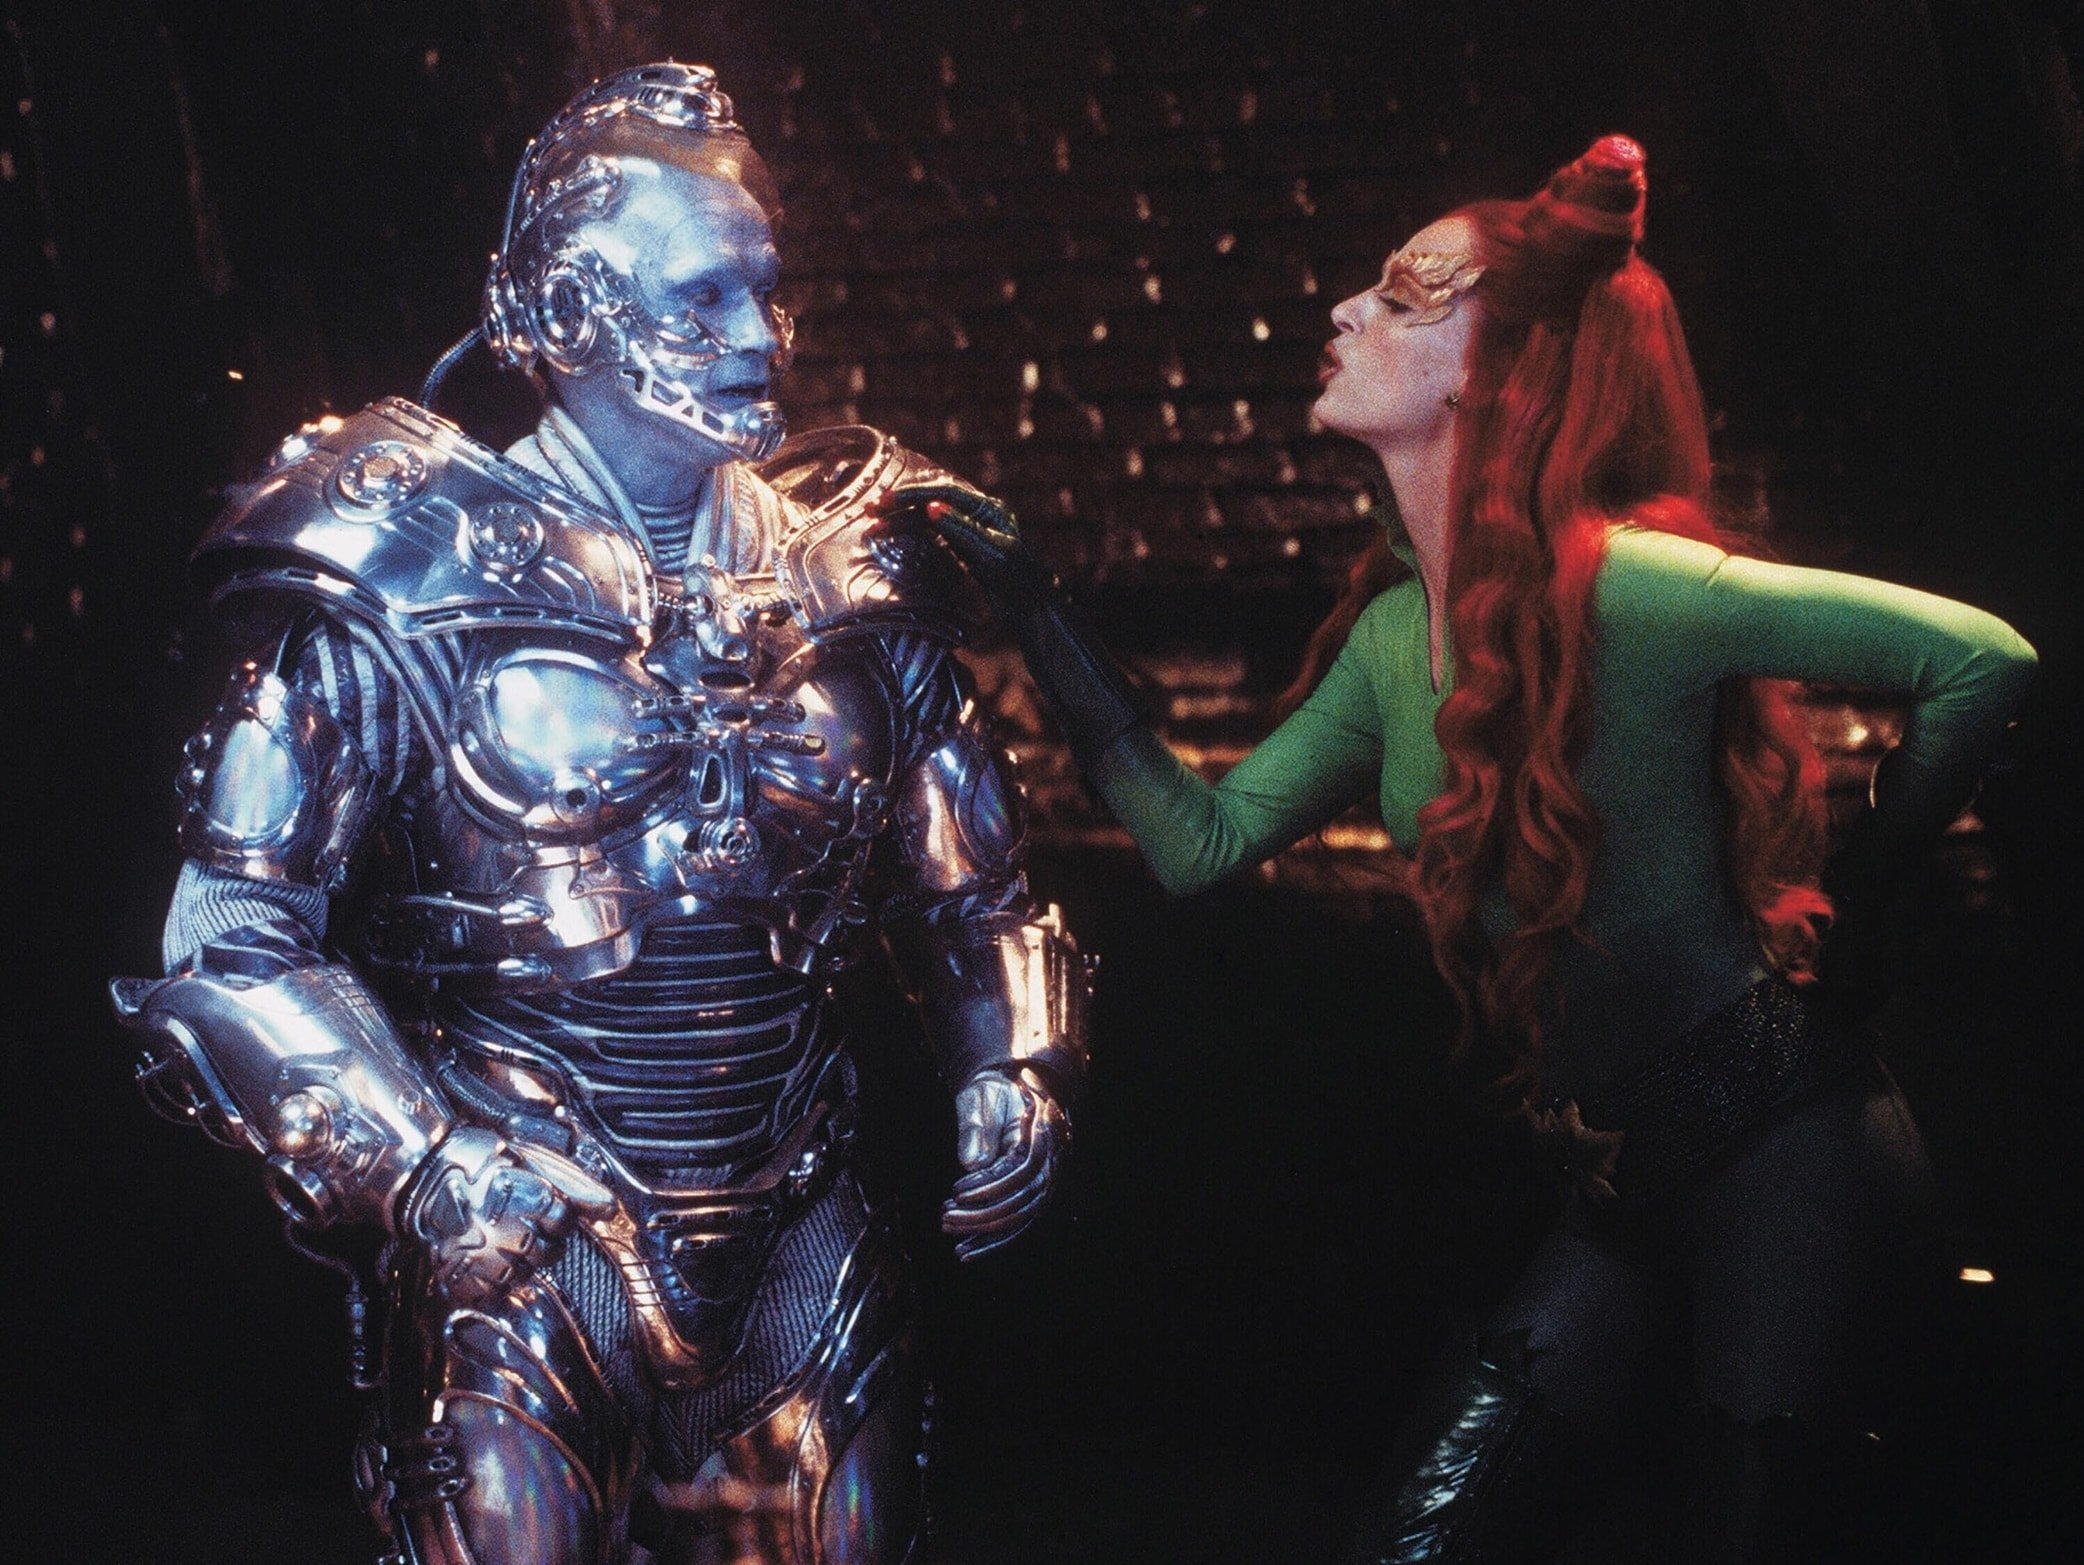 Arnold Schwarzenegger as Dr. Victor Fries / Mr. Freeze and Uma Thurman as Dr. Pamela Isley / Poison Ivy in Batman & Robin